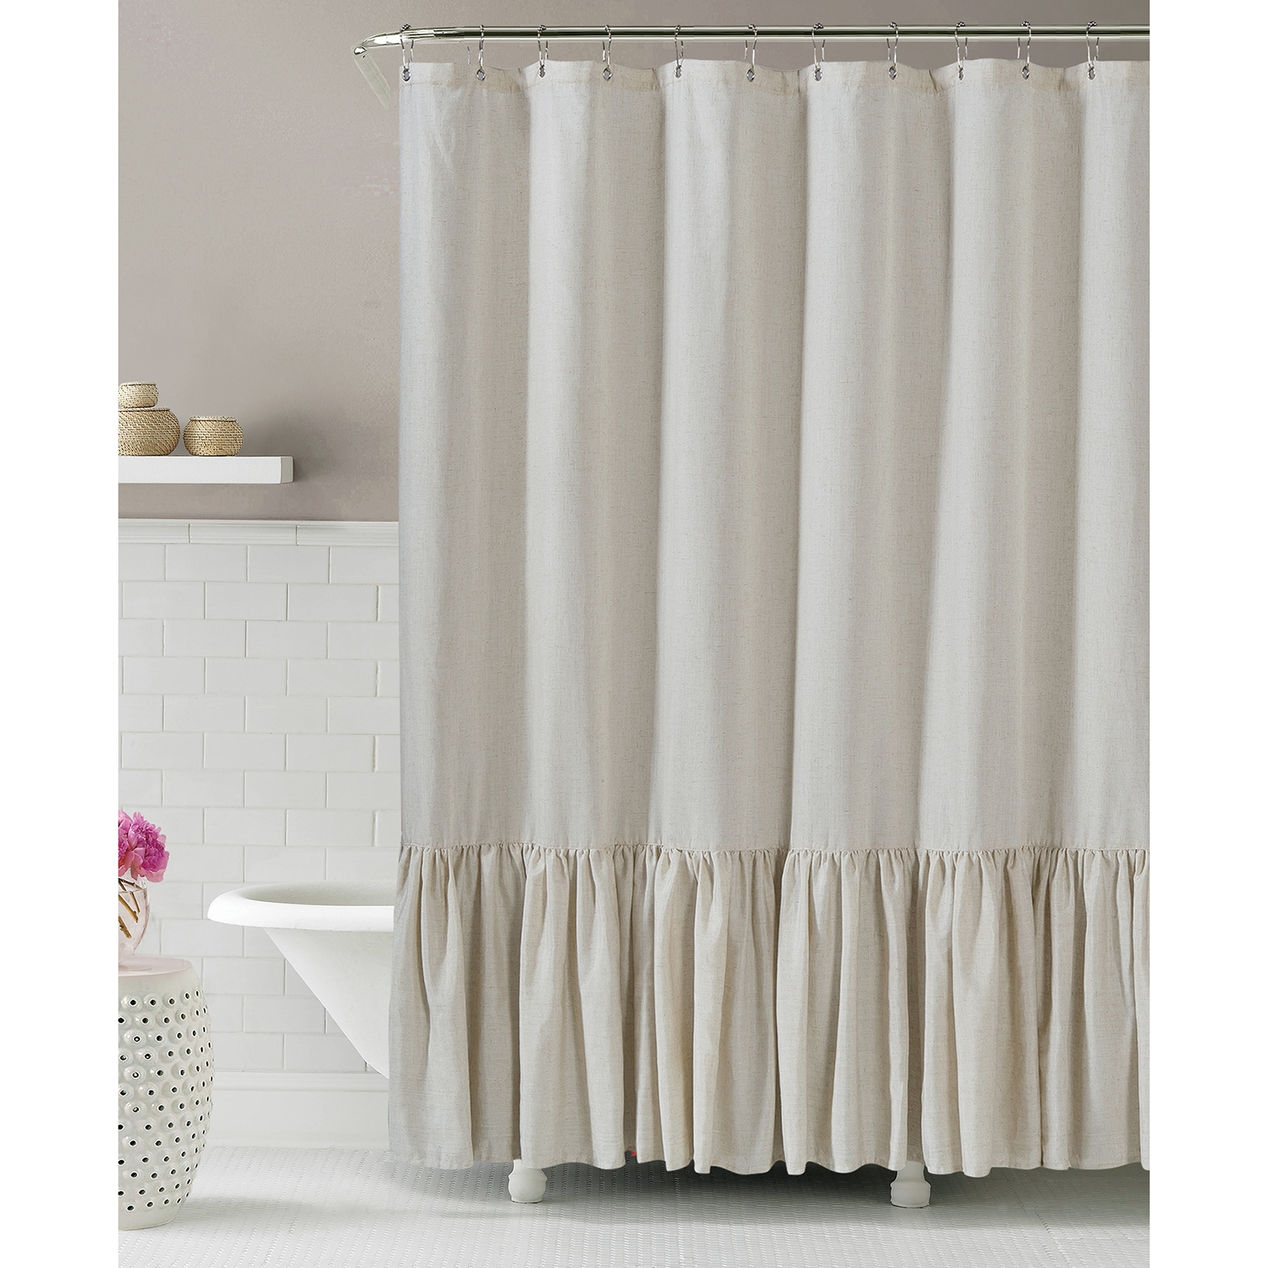 Extra Long Linen Curtains Home Design In Extra Long Linen Curtains (Image 7 of 15)